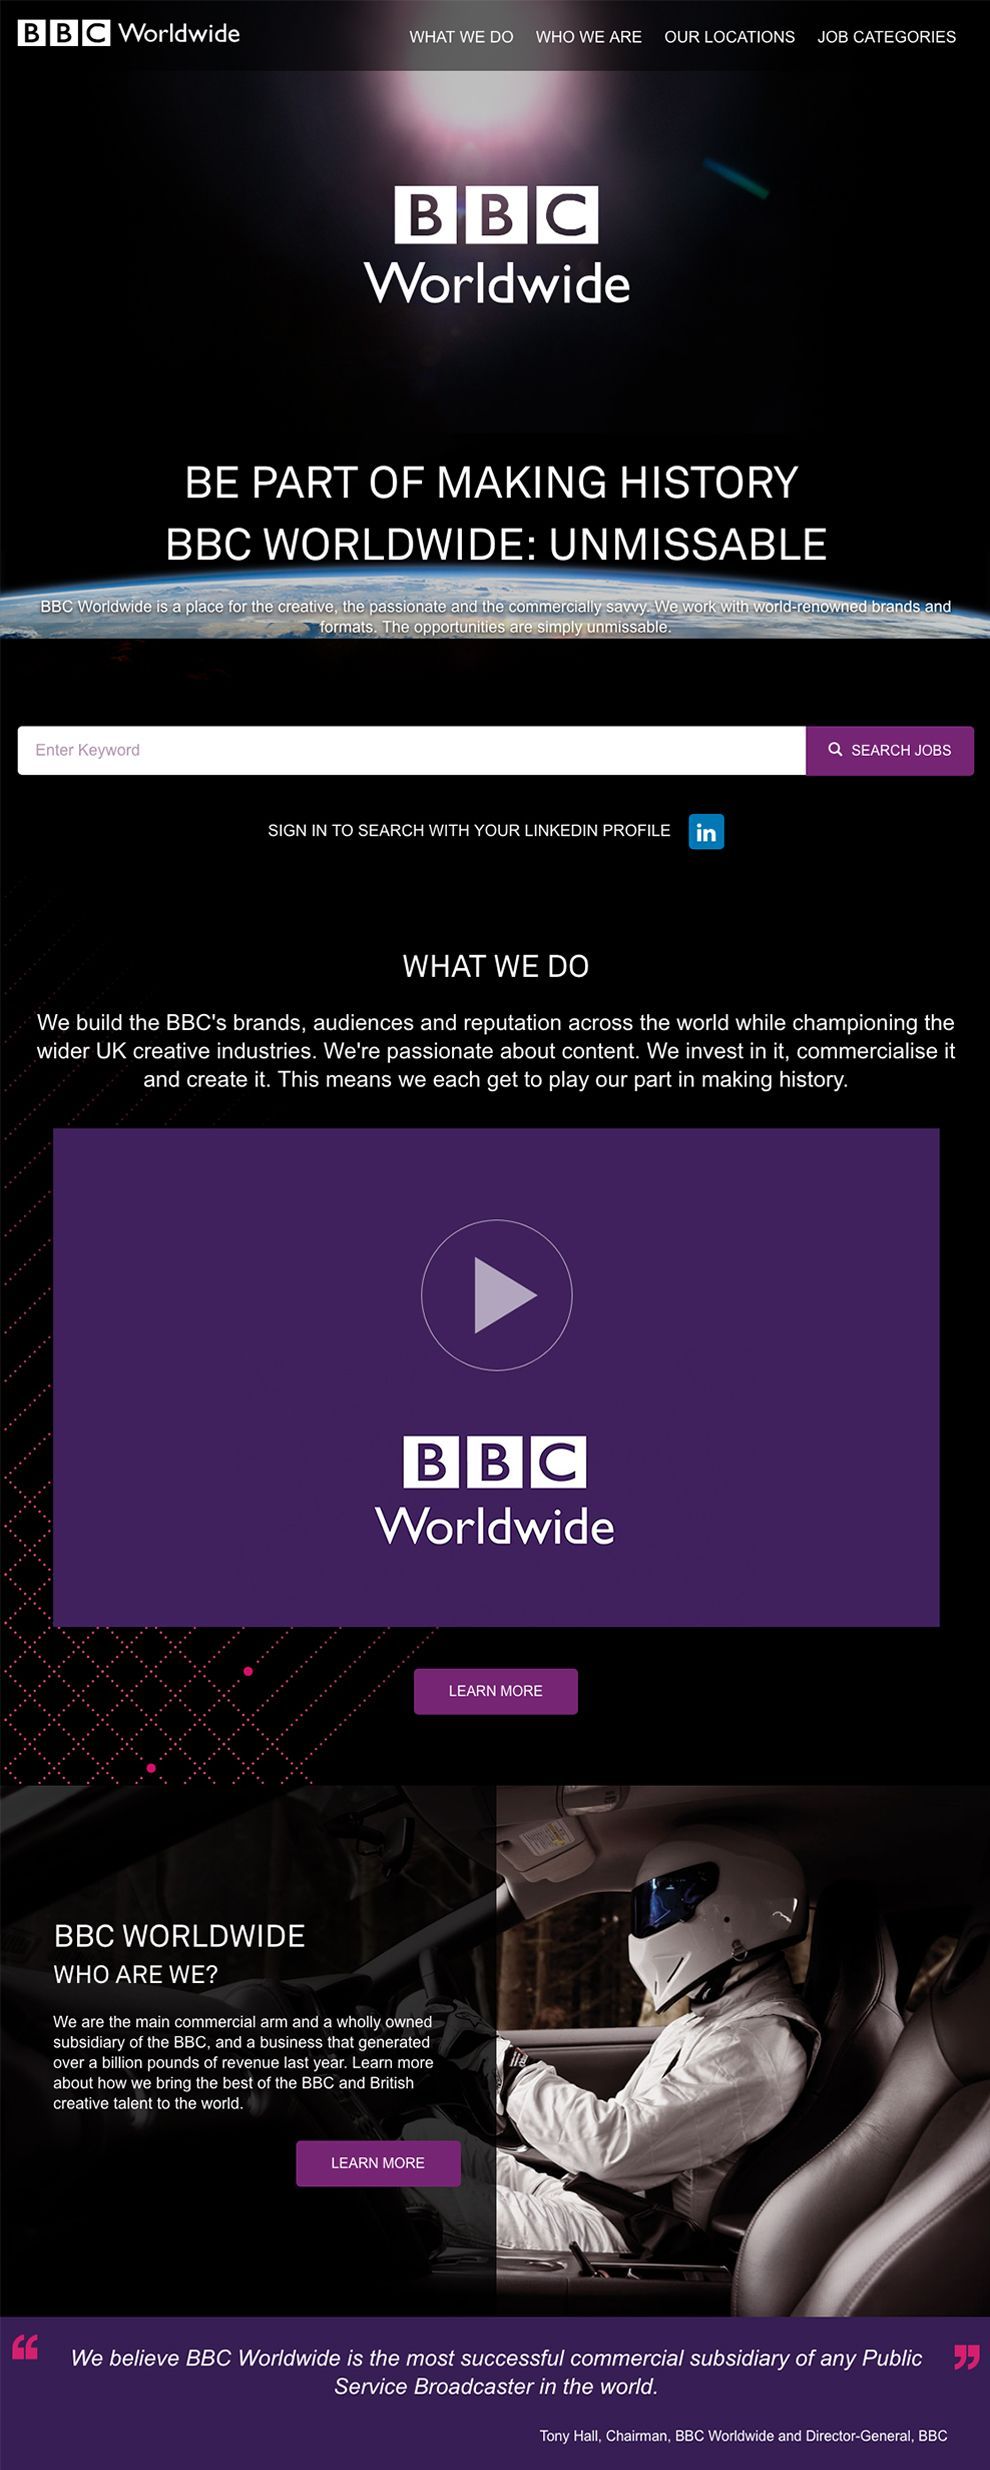 BBC Worldwide Awesome About Page